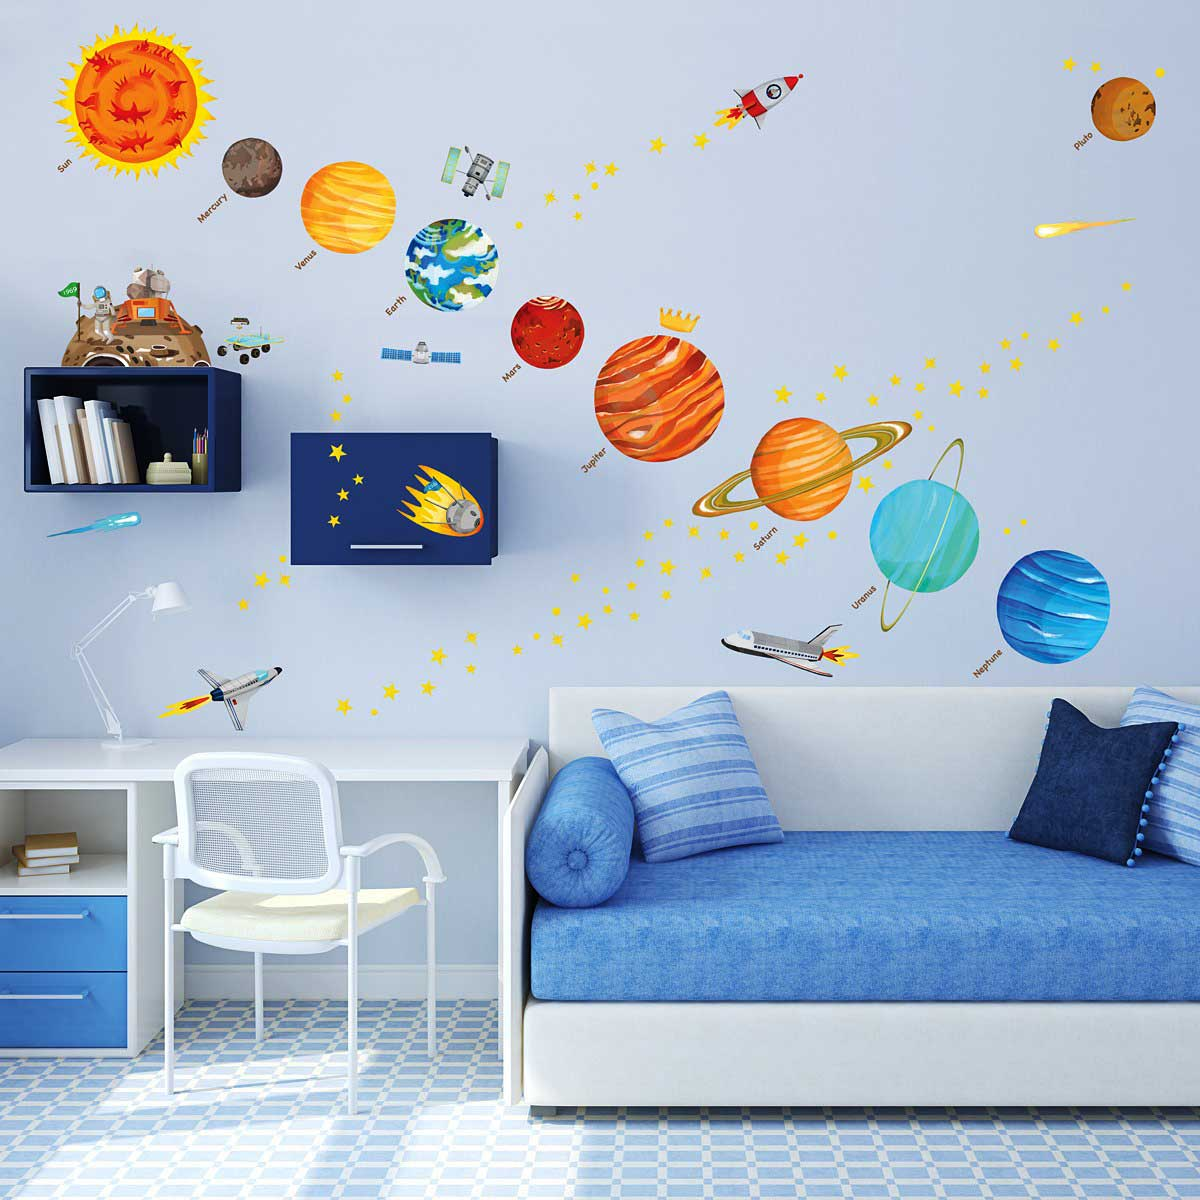 solar system wall painting pinterest - photo #33